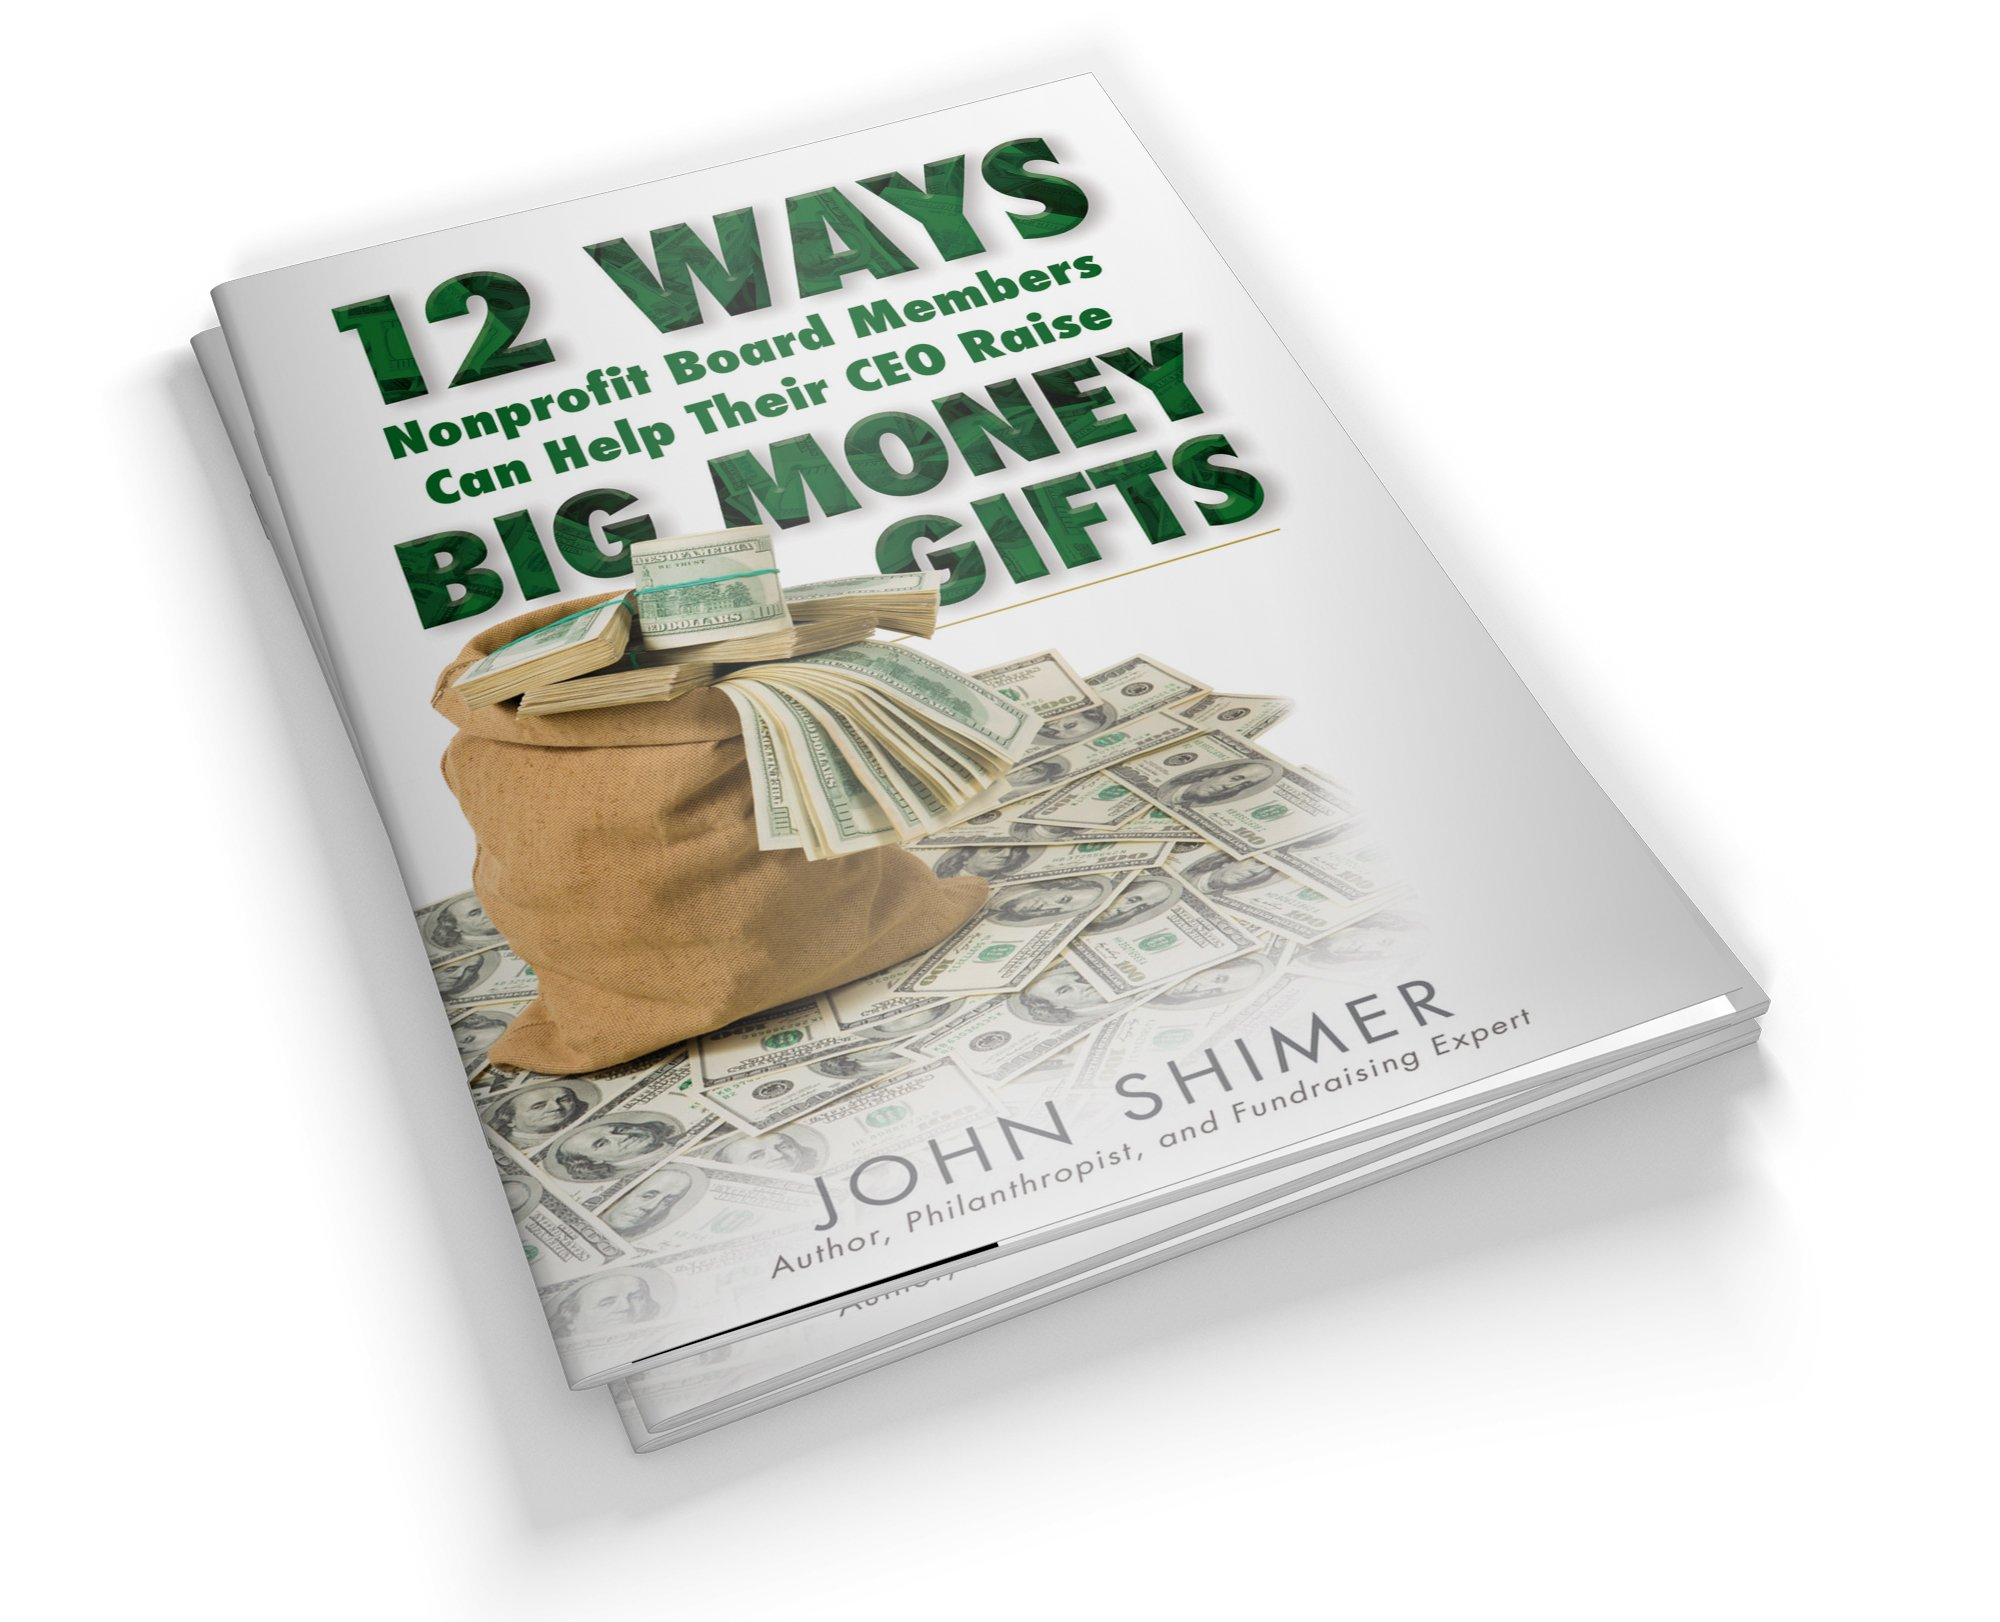 Download 12 Ways Nonprofit Board Members Can Help Their CEO Raise BIG MONEY Gifts - Next level charity donation tips for the board of directors. PDF ePub ebook